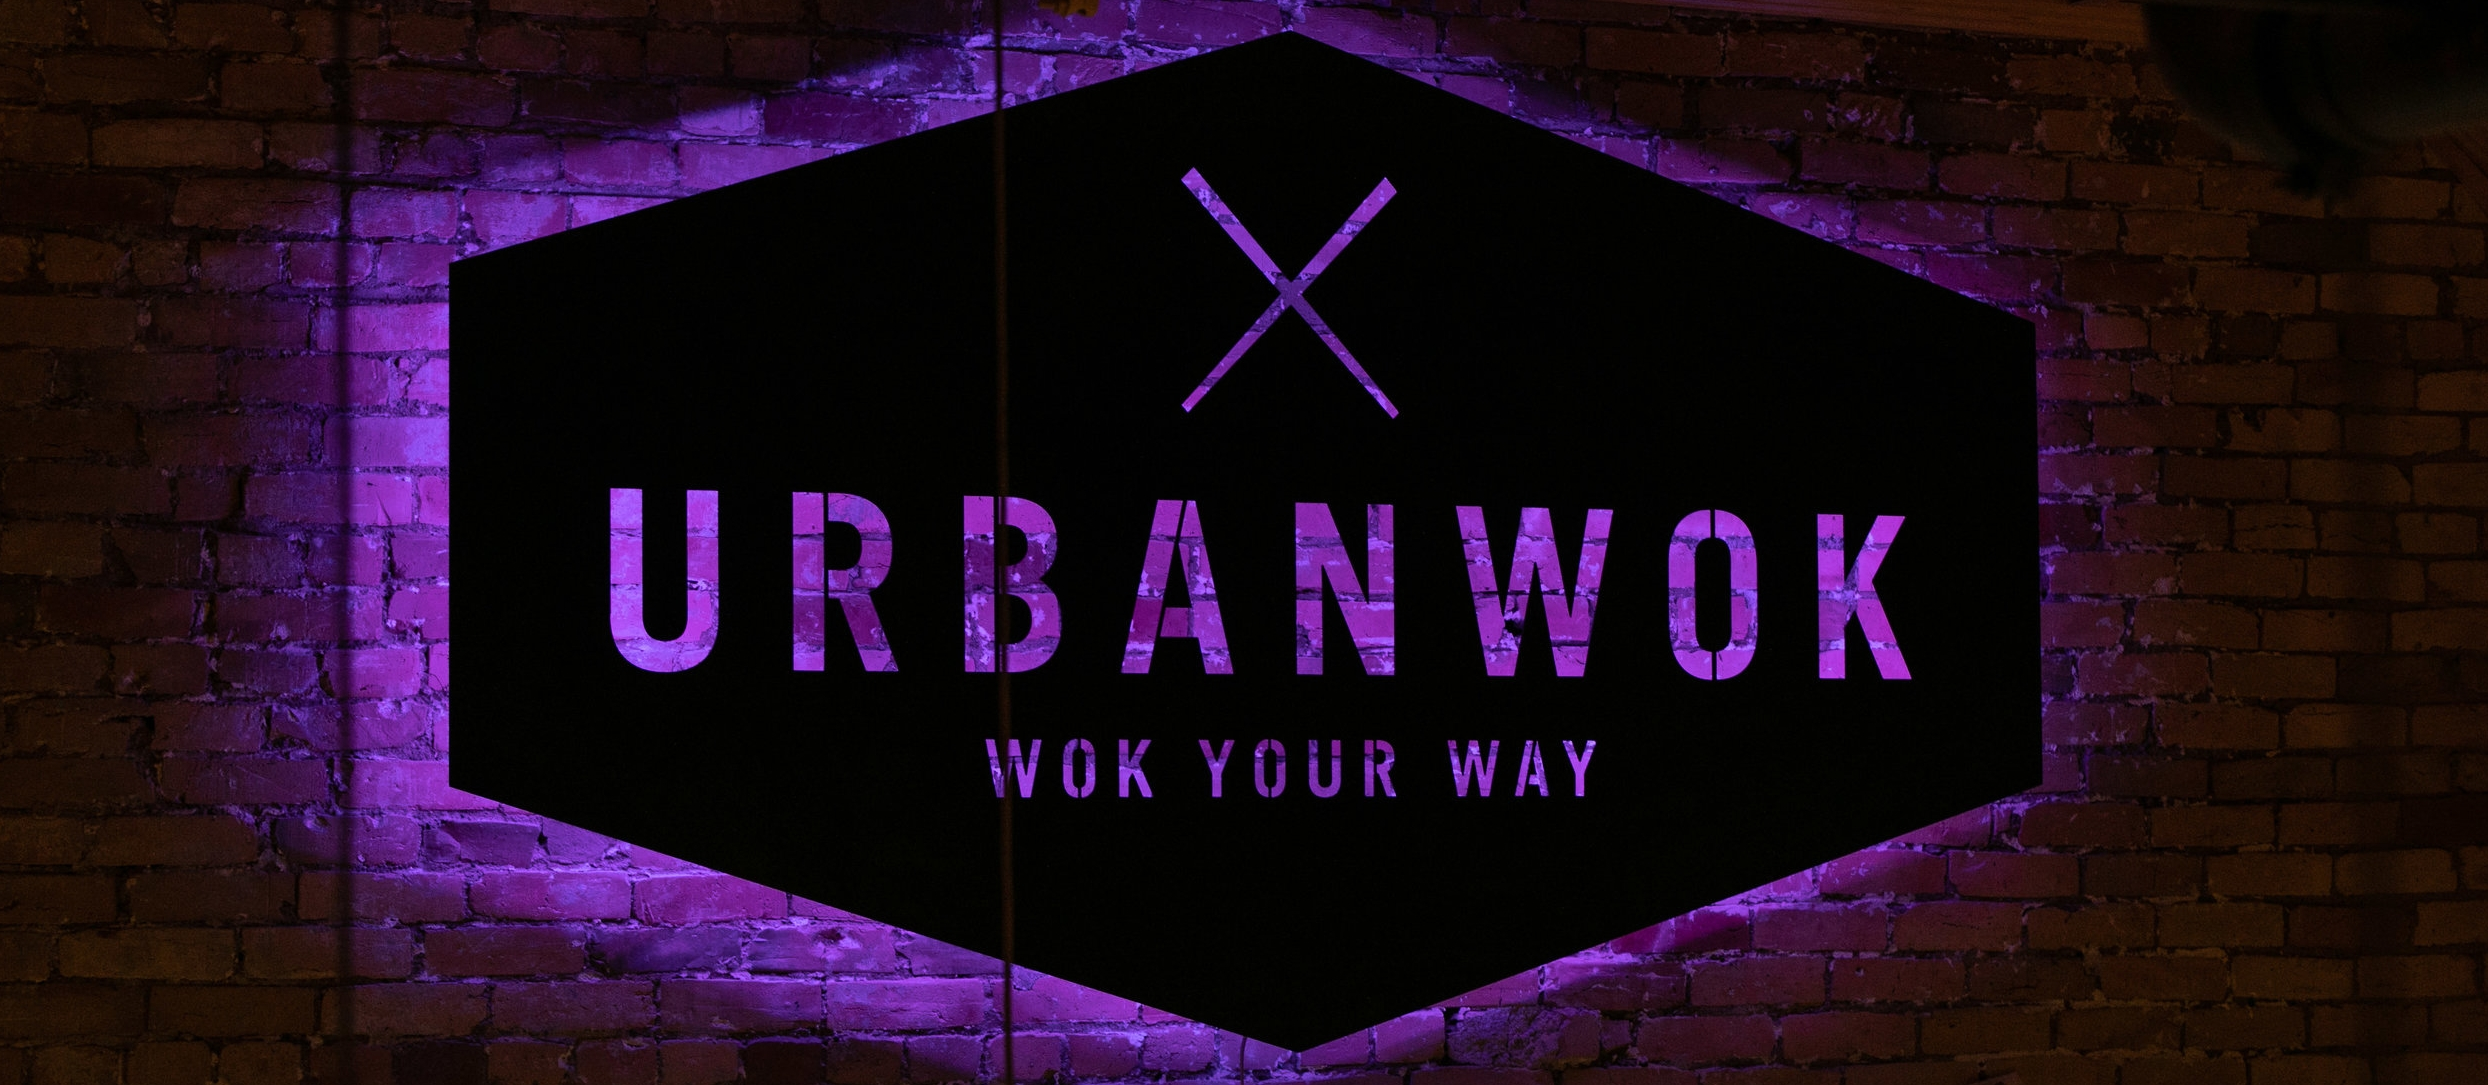 Urban Wok Neon Sign in Lowertown